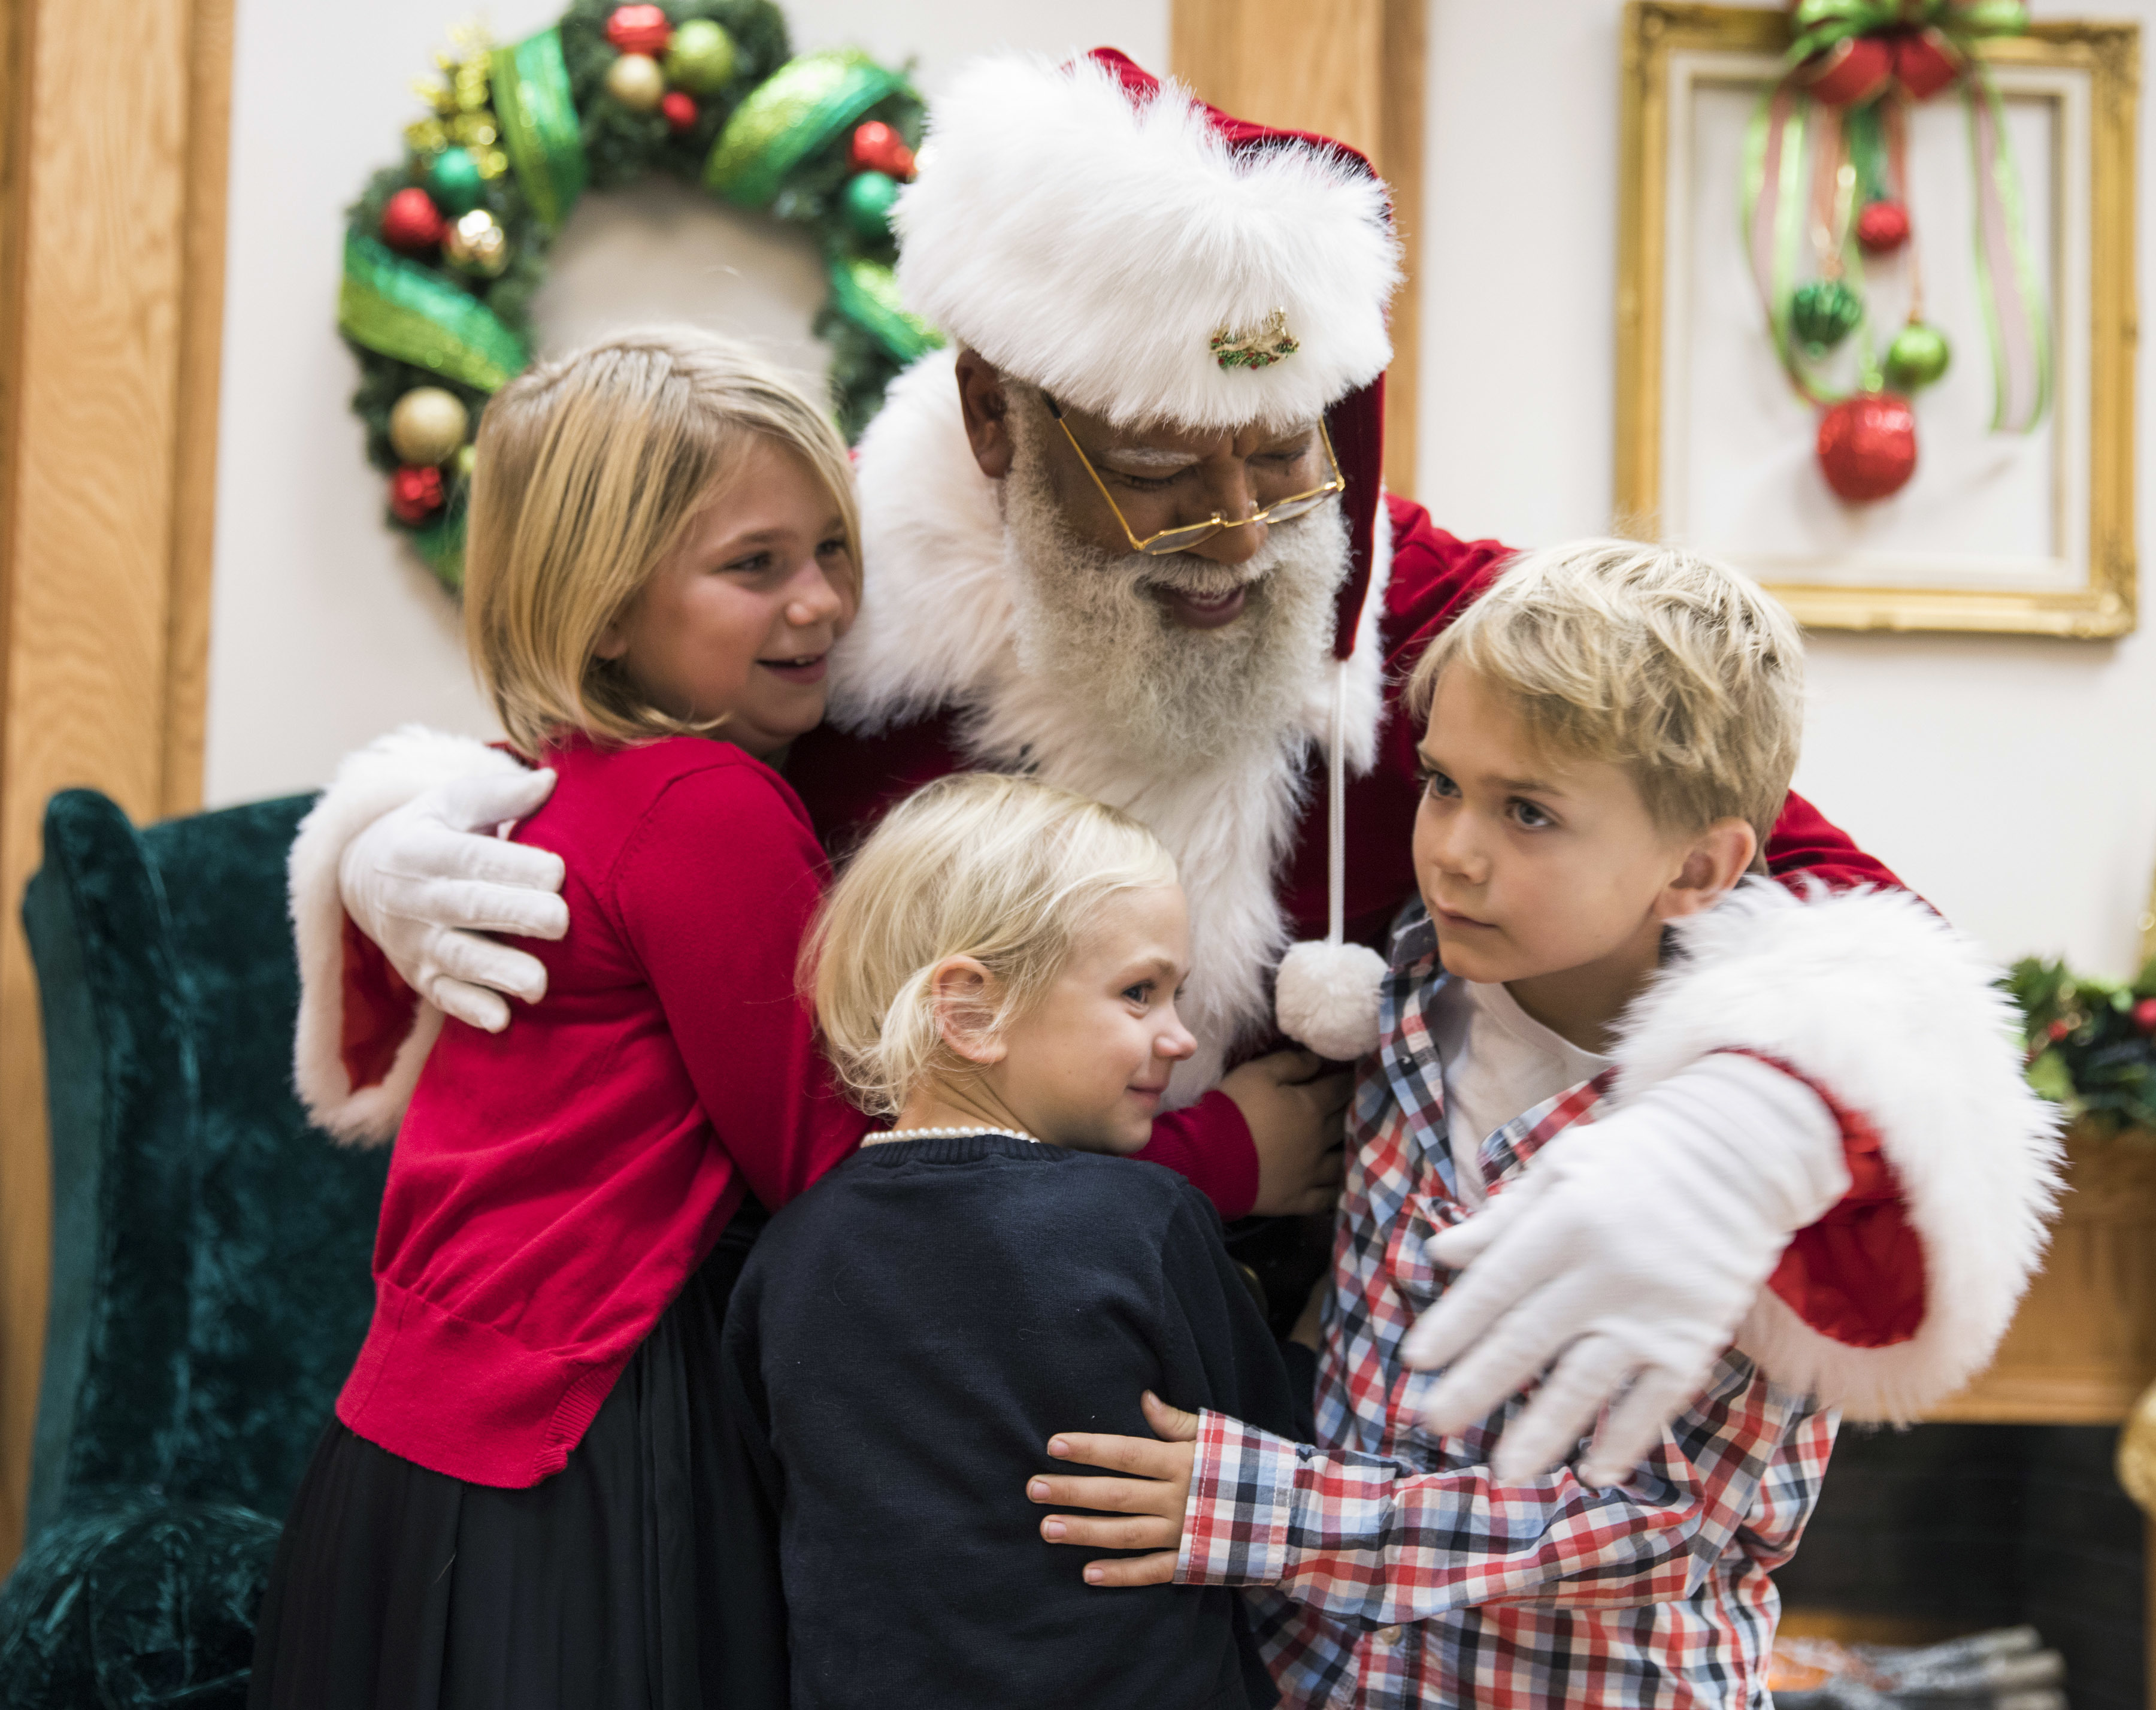 Larry Jefferson, playing the role of Santa, gets a hug from Olivia Major, left, her sister Mallory and brother Preston, of Blaine, at the Santa Experience at Mall of America in Bloomington, Minn.